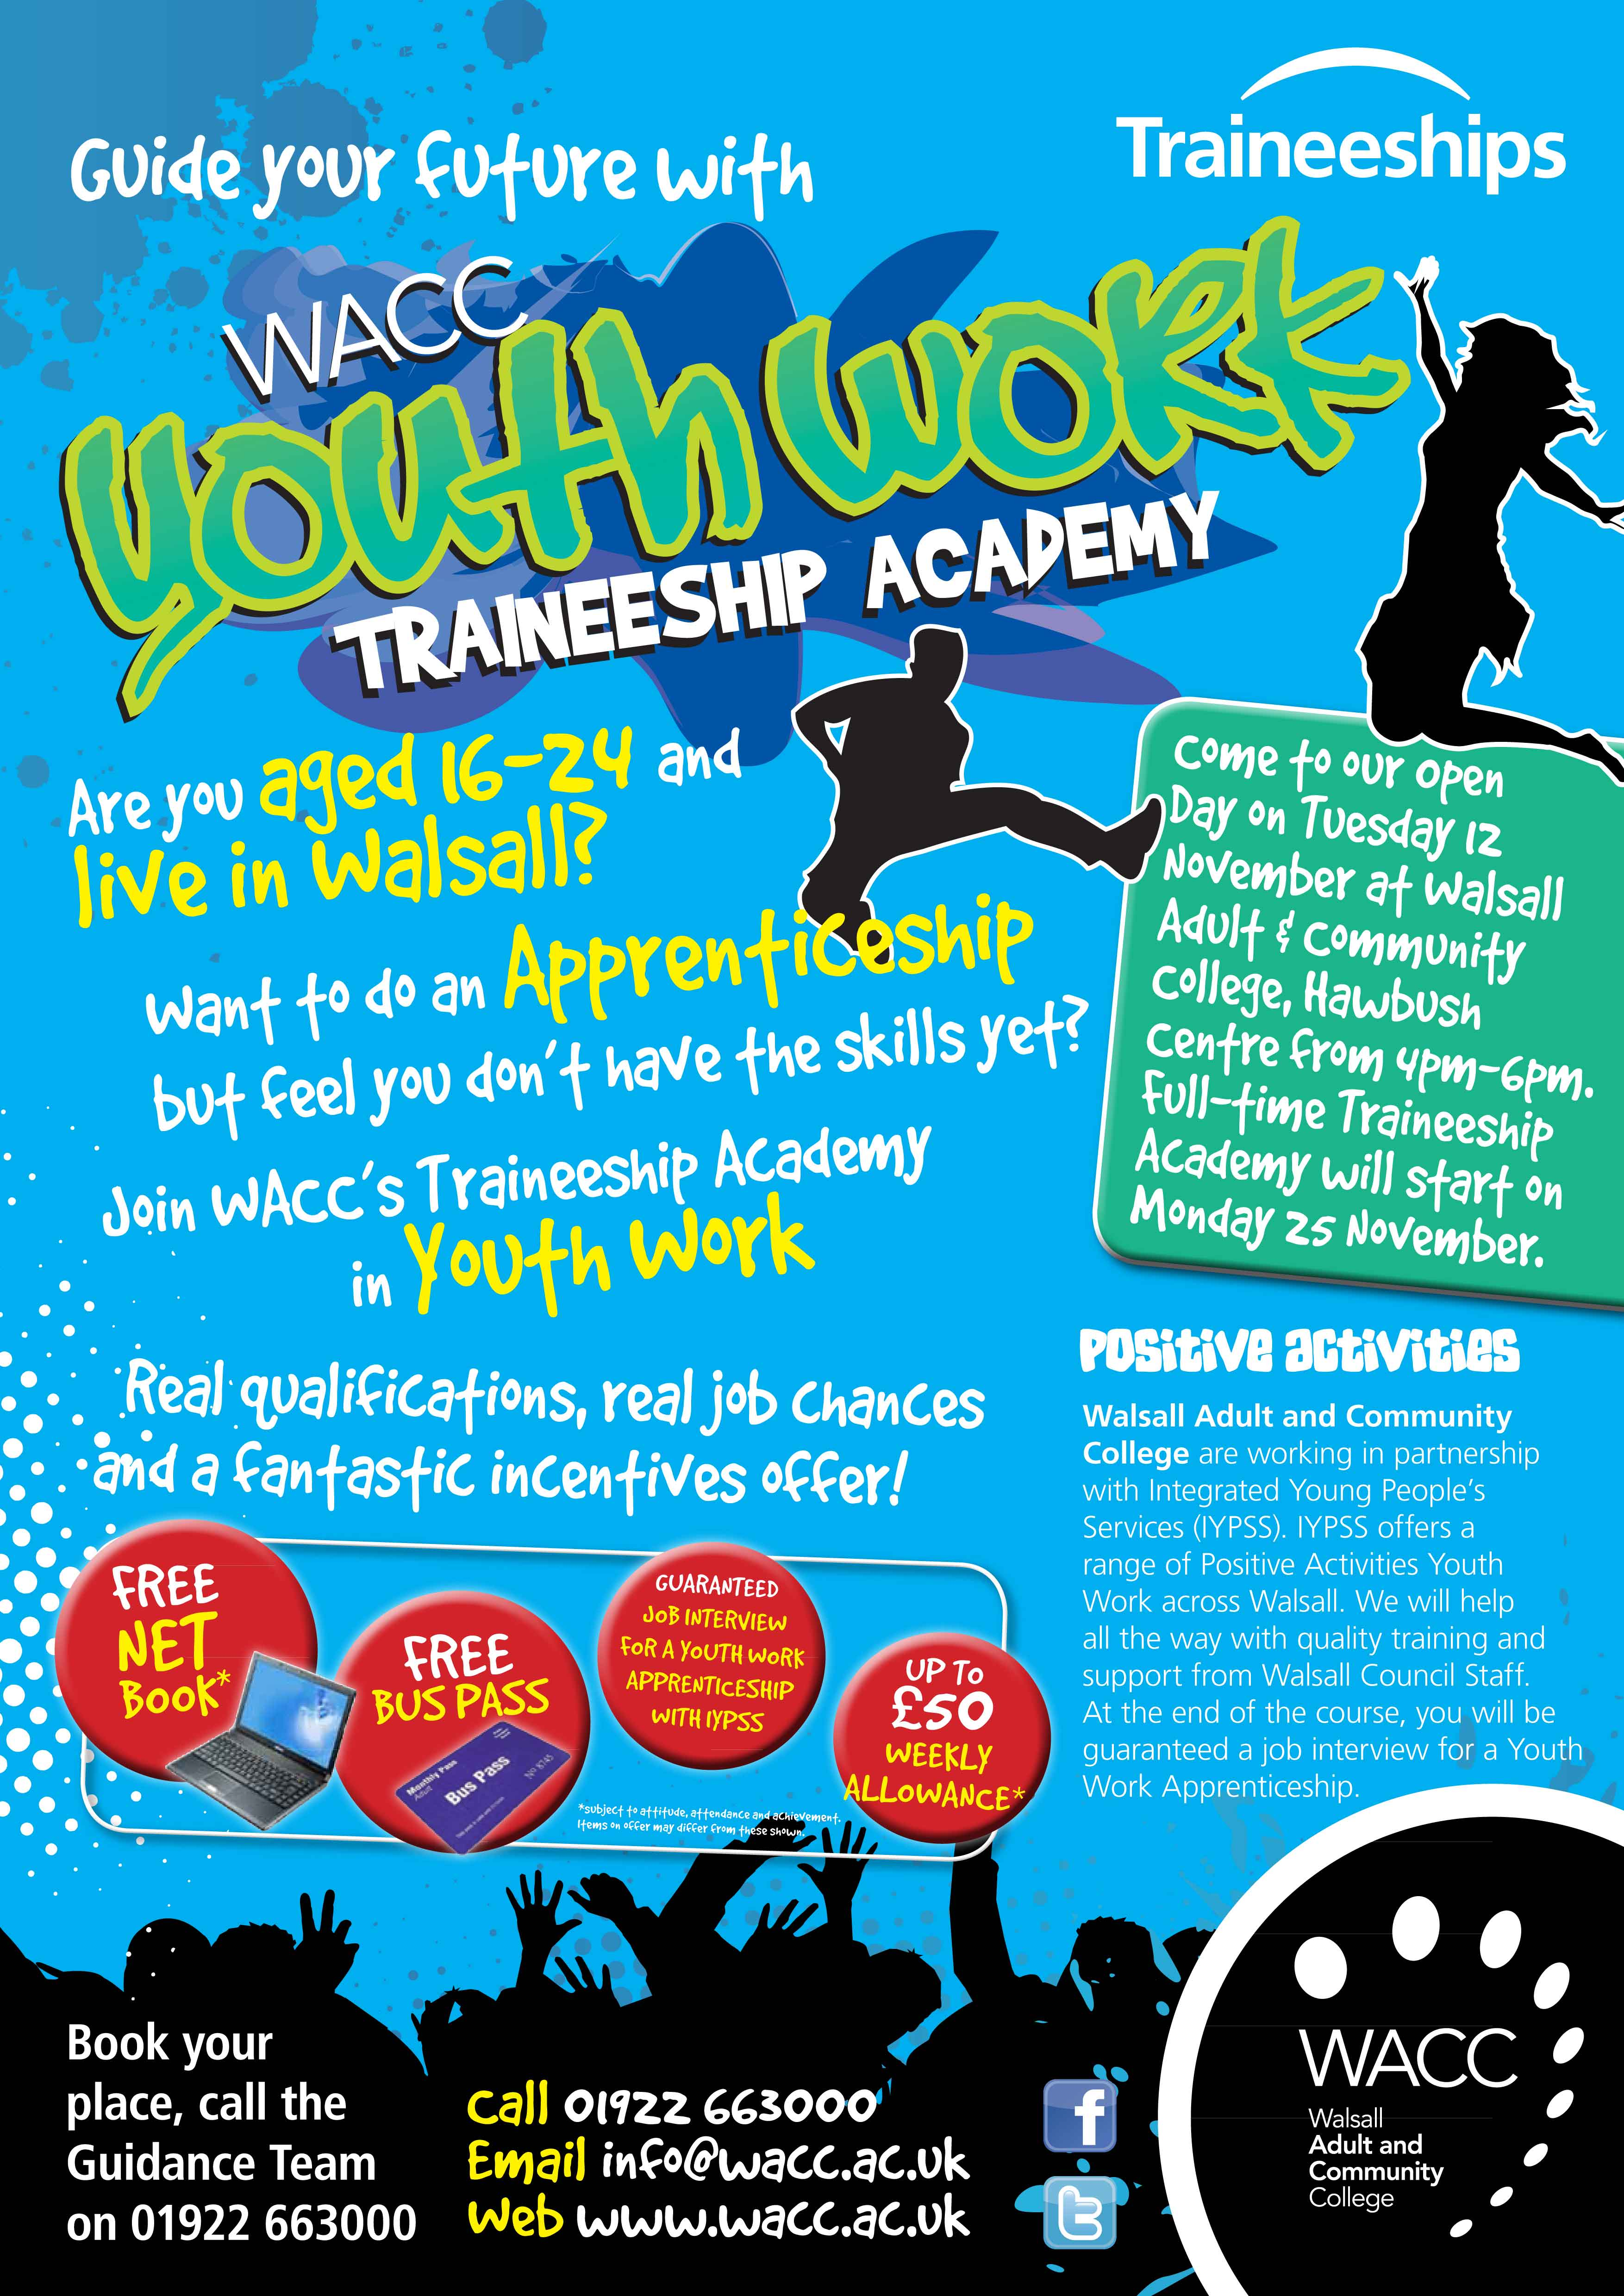 Guide your future with WACC youth work traineeship acedeny